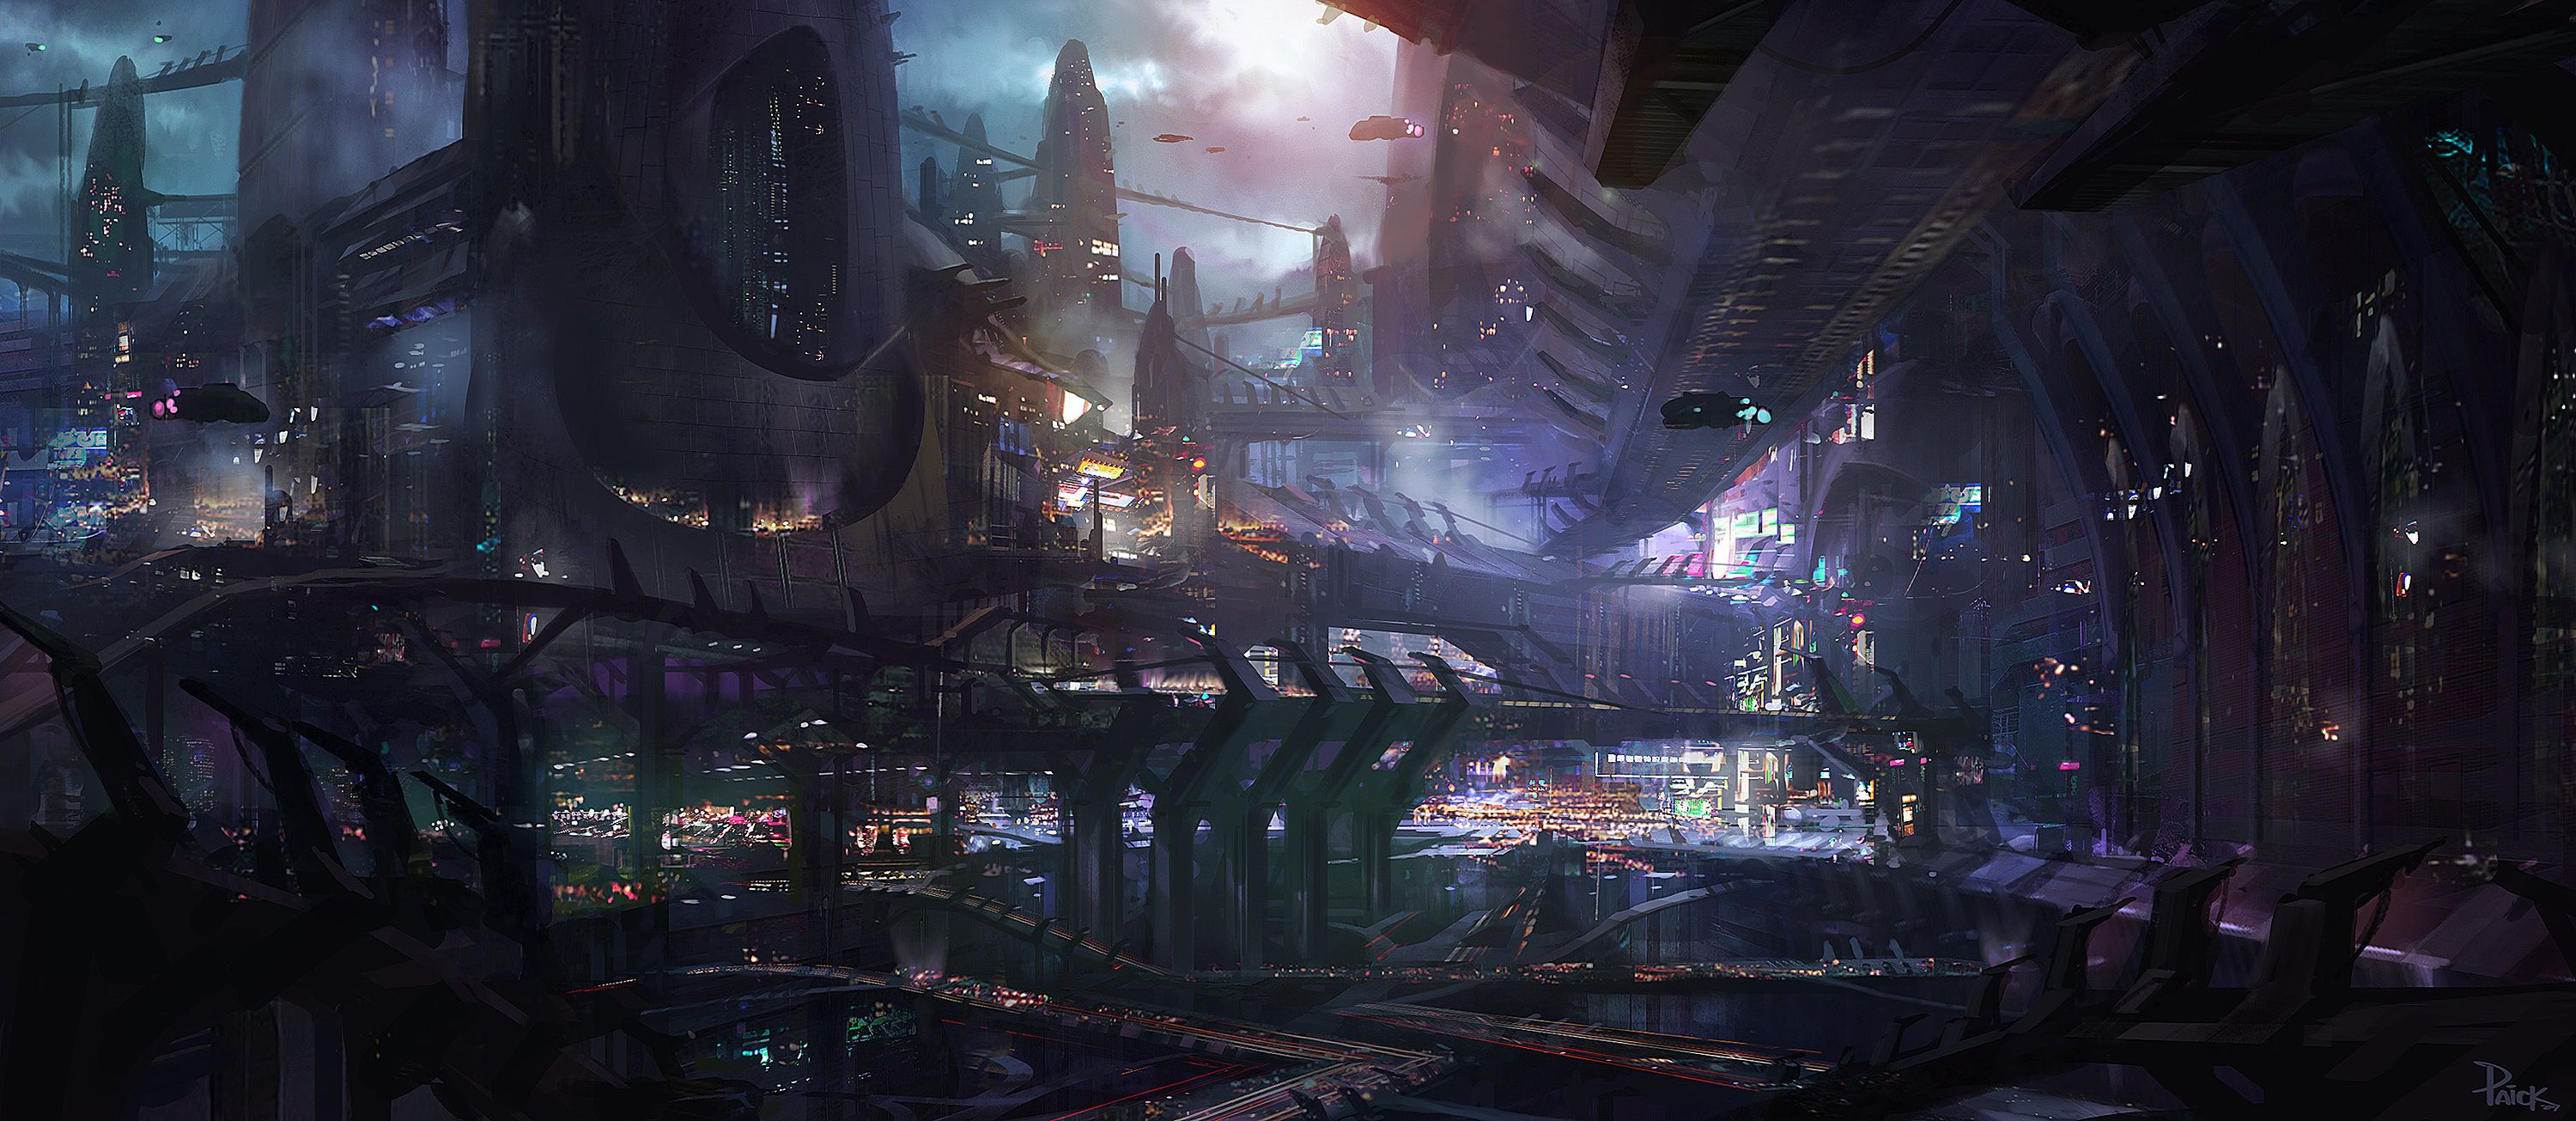 Image Result For Dark City Abstract Image Picture And Wallpaper Science Fiction Dystopia Future Noir Blade Runner Cyberpunk Night Skylines Dark City Metropolis